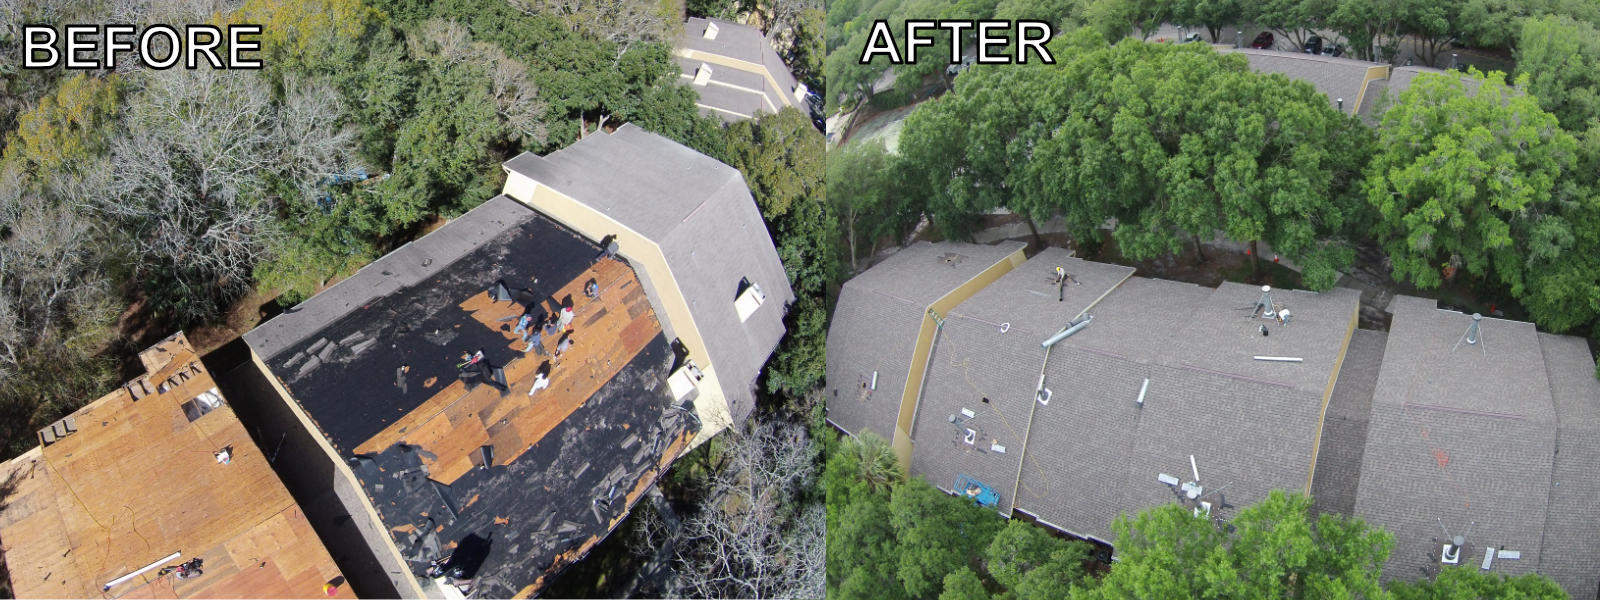 EZ General before-after commercial shingle roofing - apartments 1600px